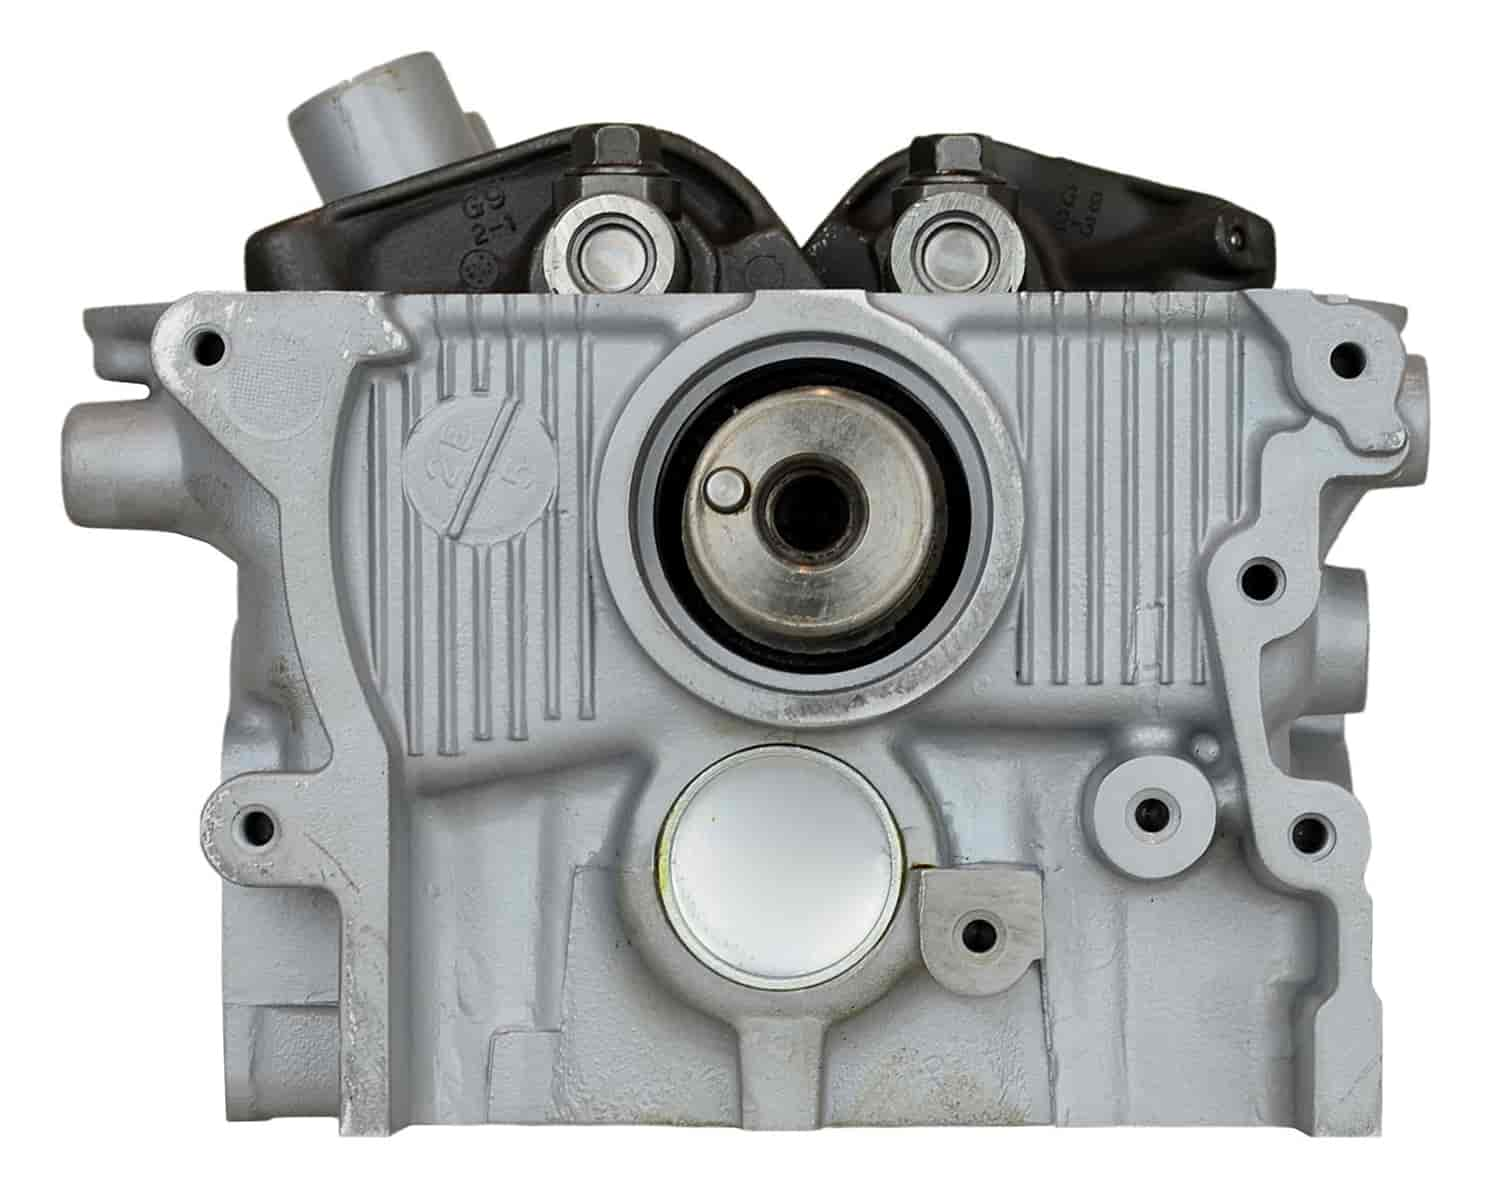 ATK Remanufactured Cylinder Heads for Mitsubishi   JEGS